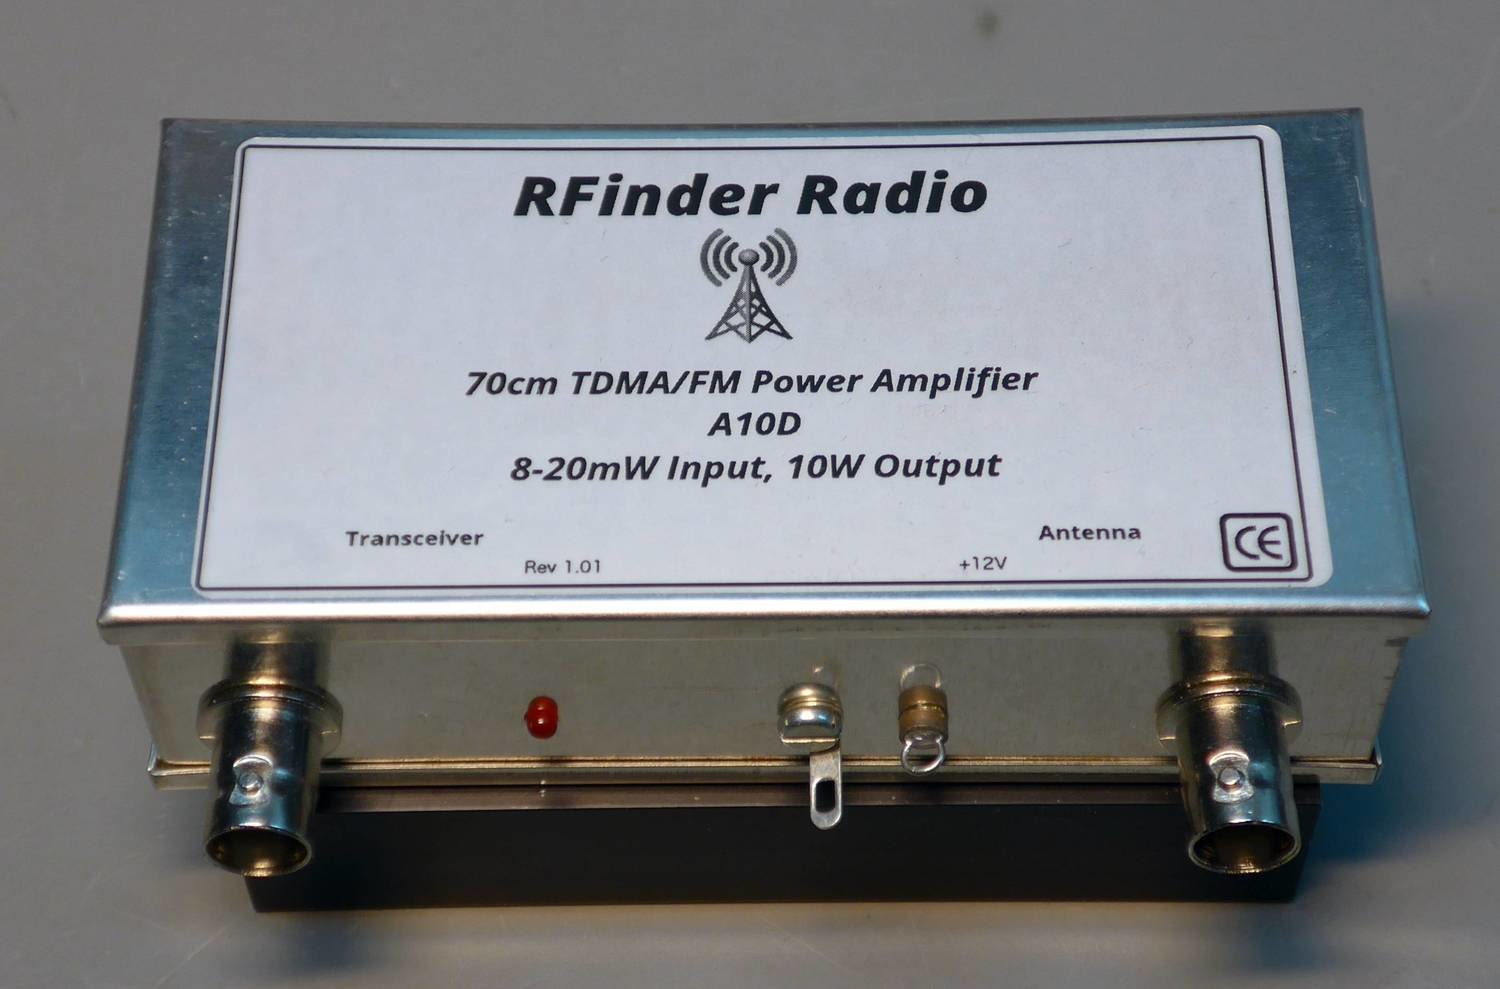 A10D 70cm TDMA/FM Amp    8-20mW in, 10W out!